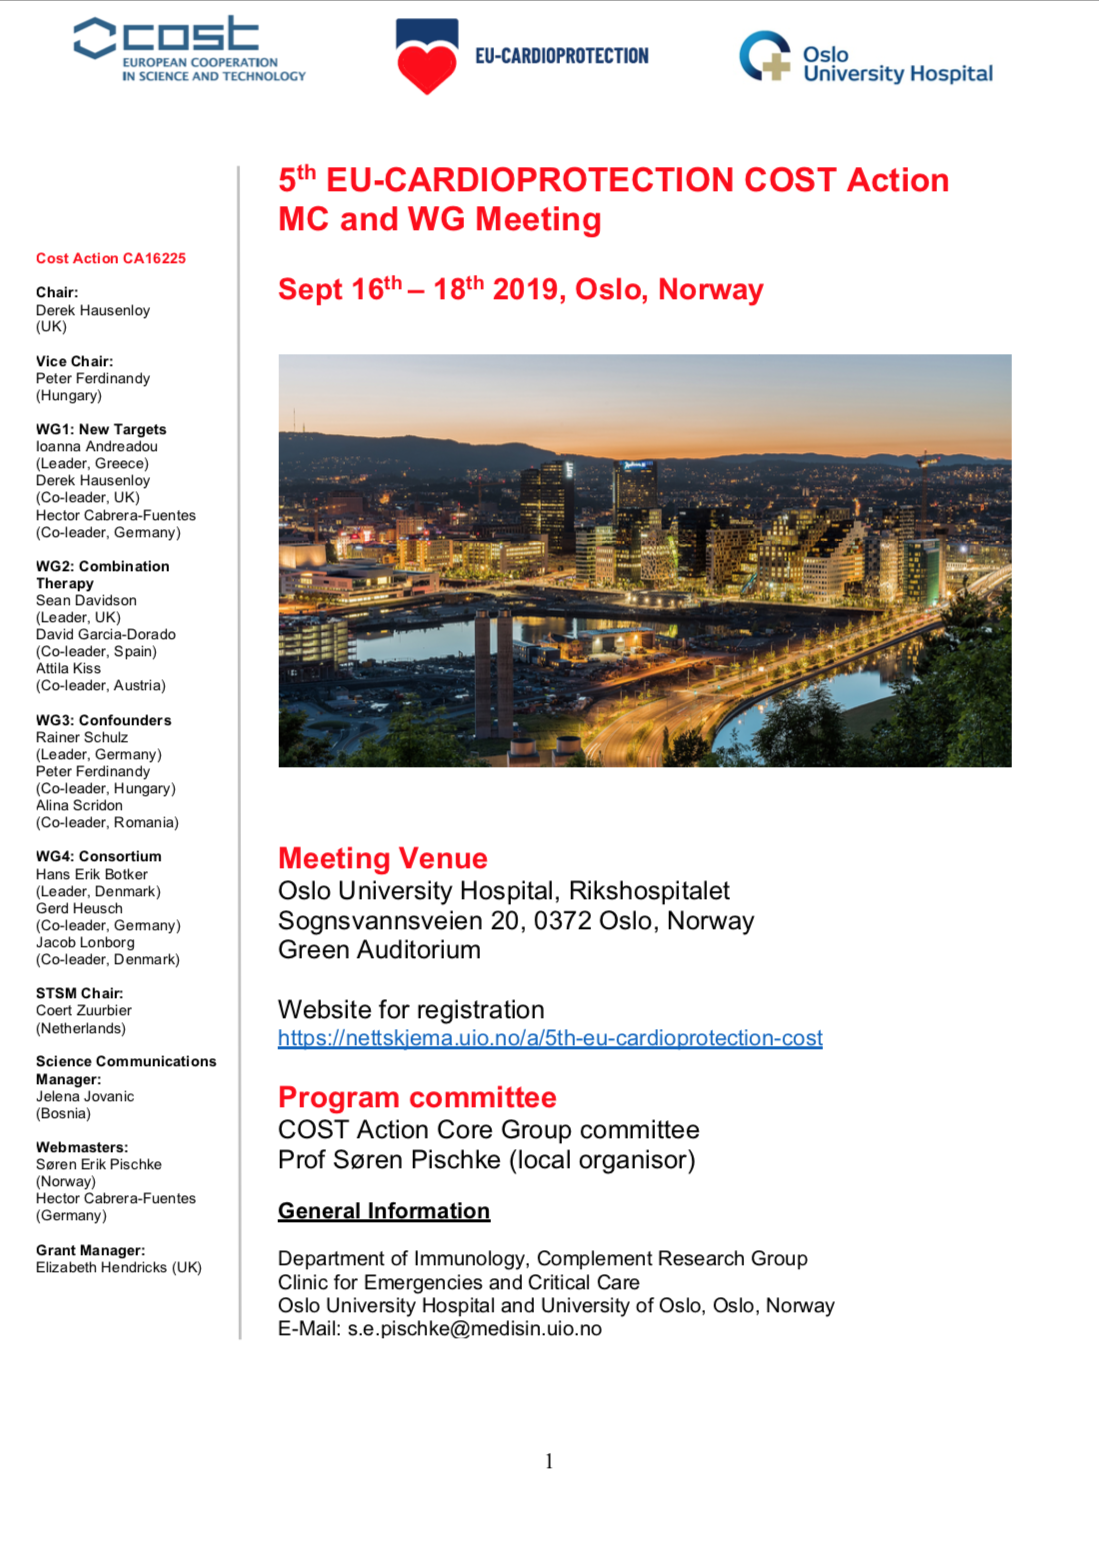 5th EU-CARDIOPROTECTION COST Action MC and WG Meeting, September 16-18, 2019 in Oslo